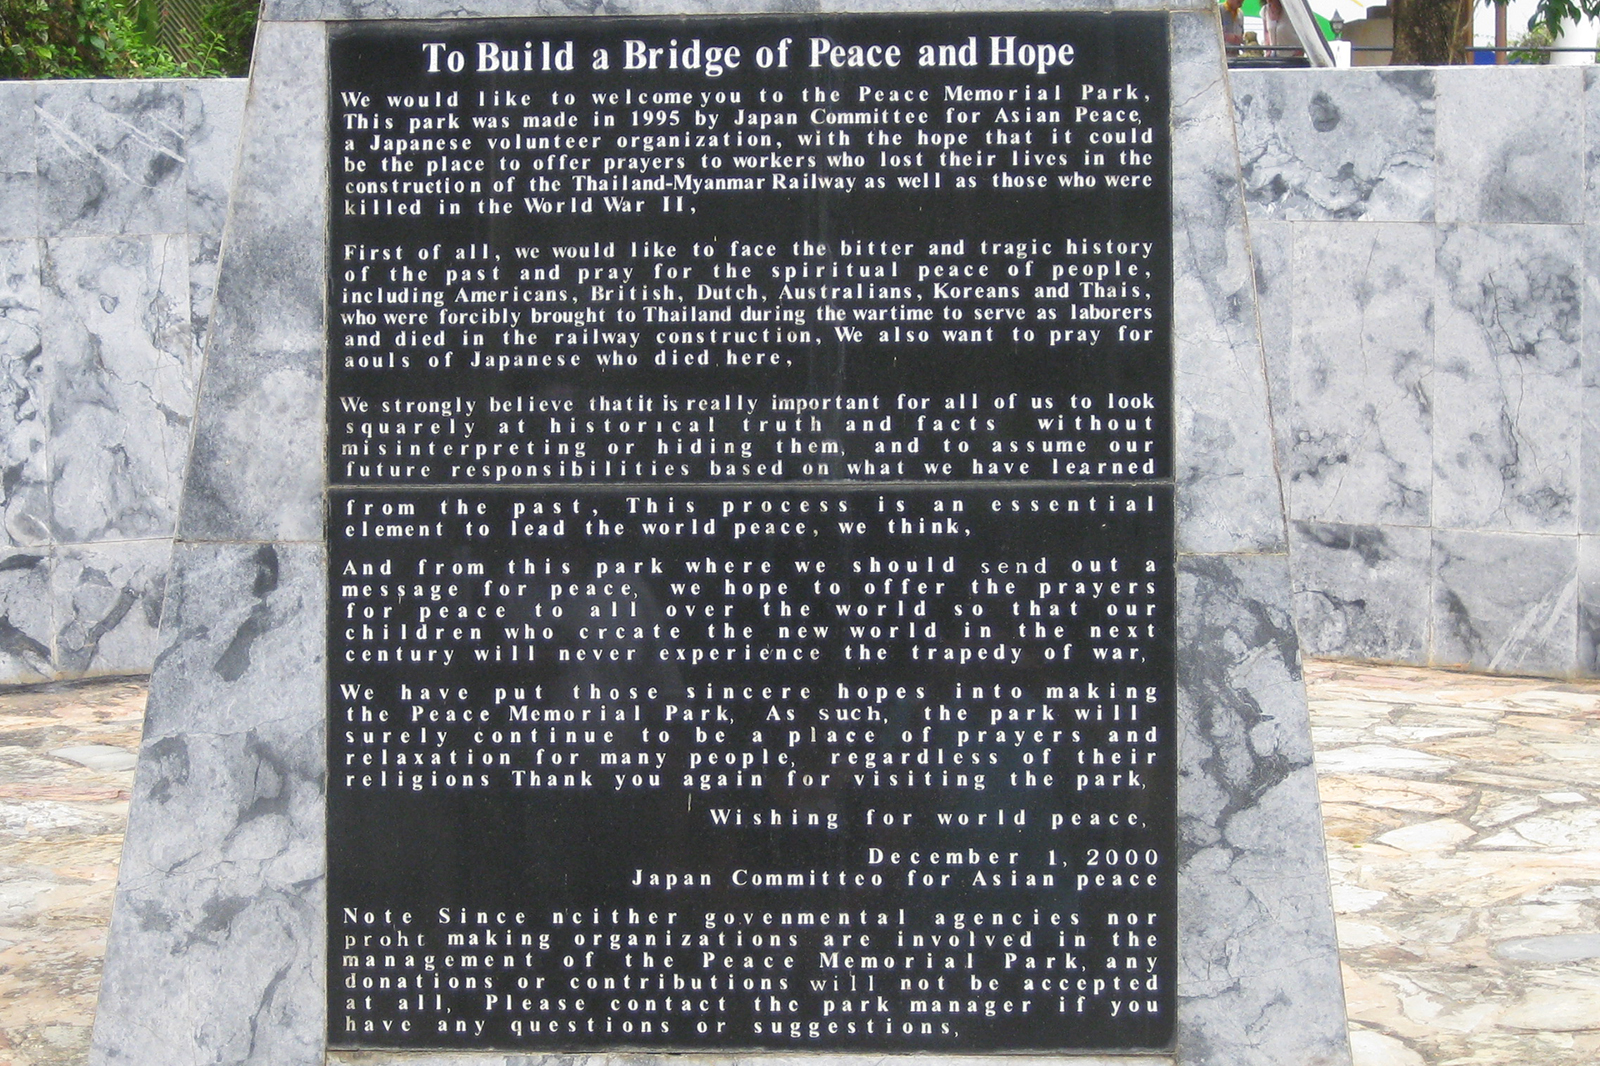 The Japanese message of peace and hope